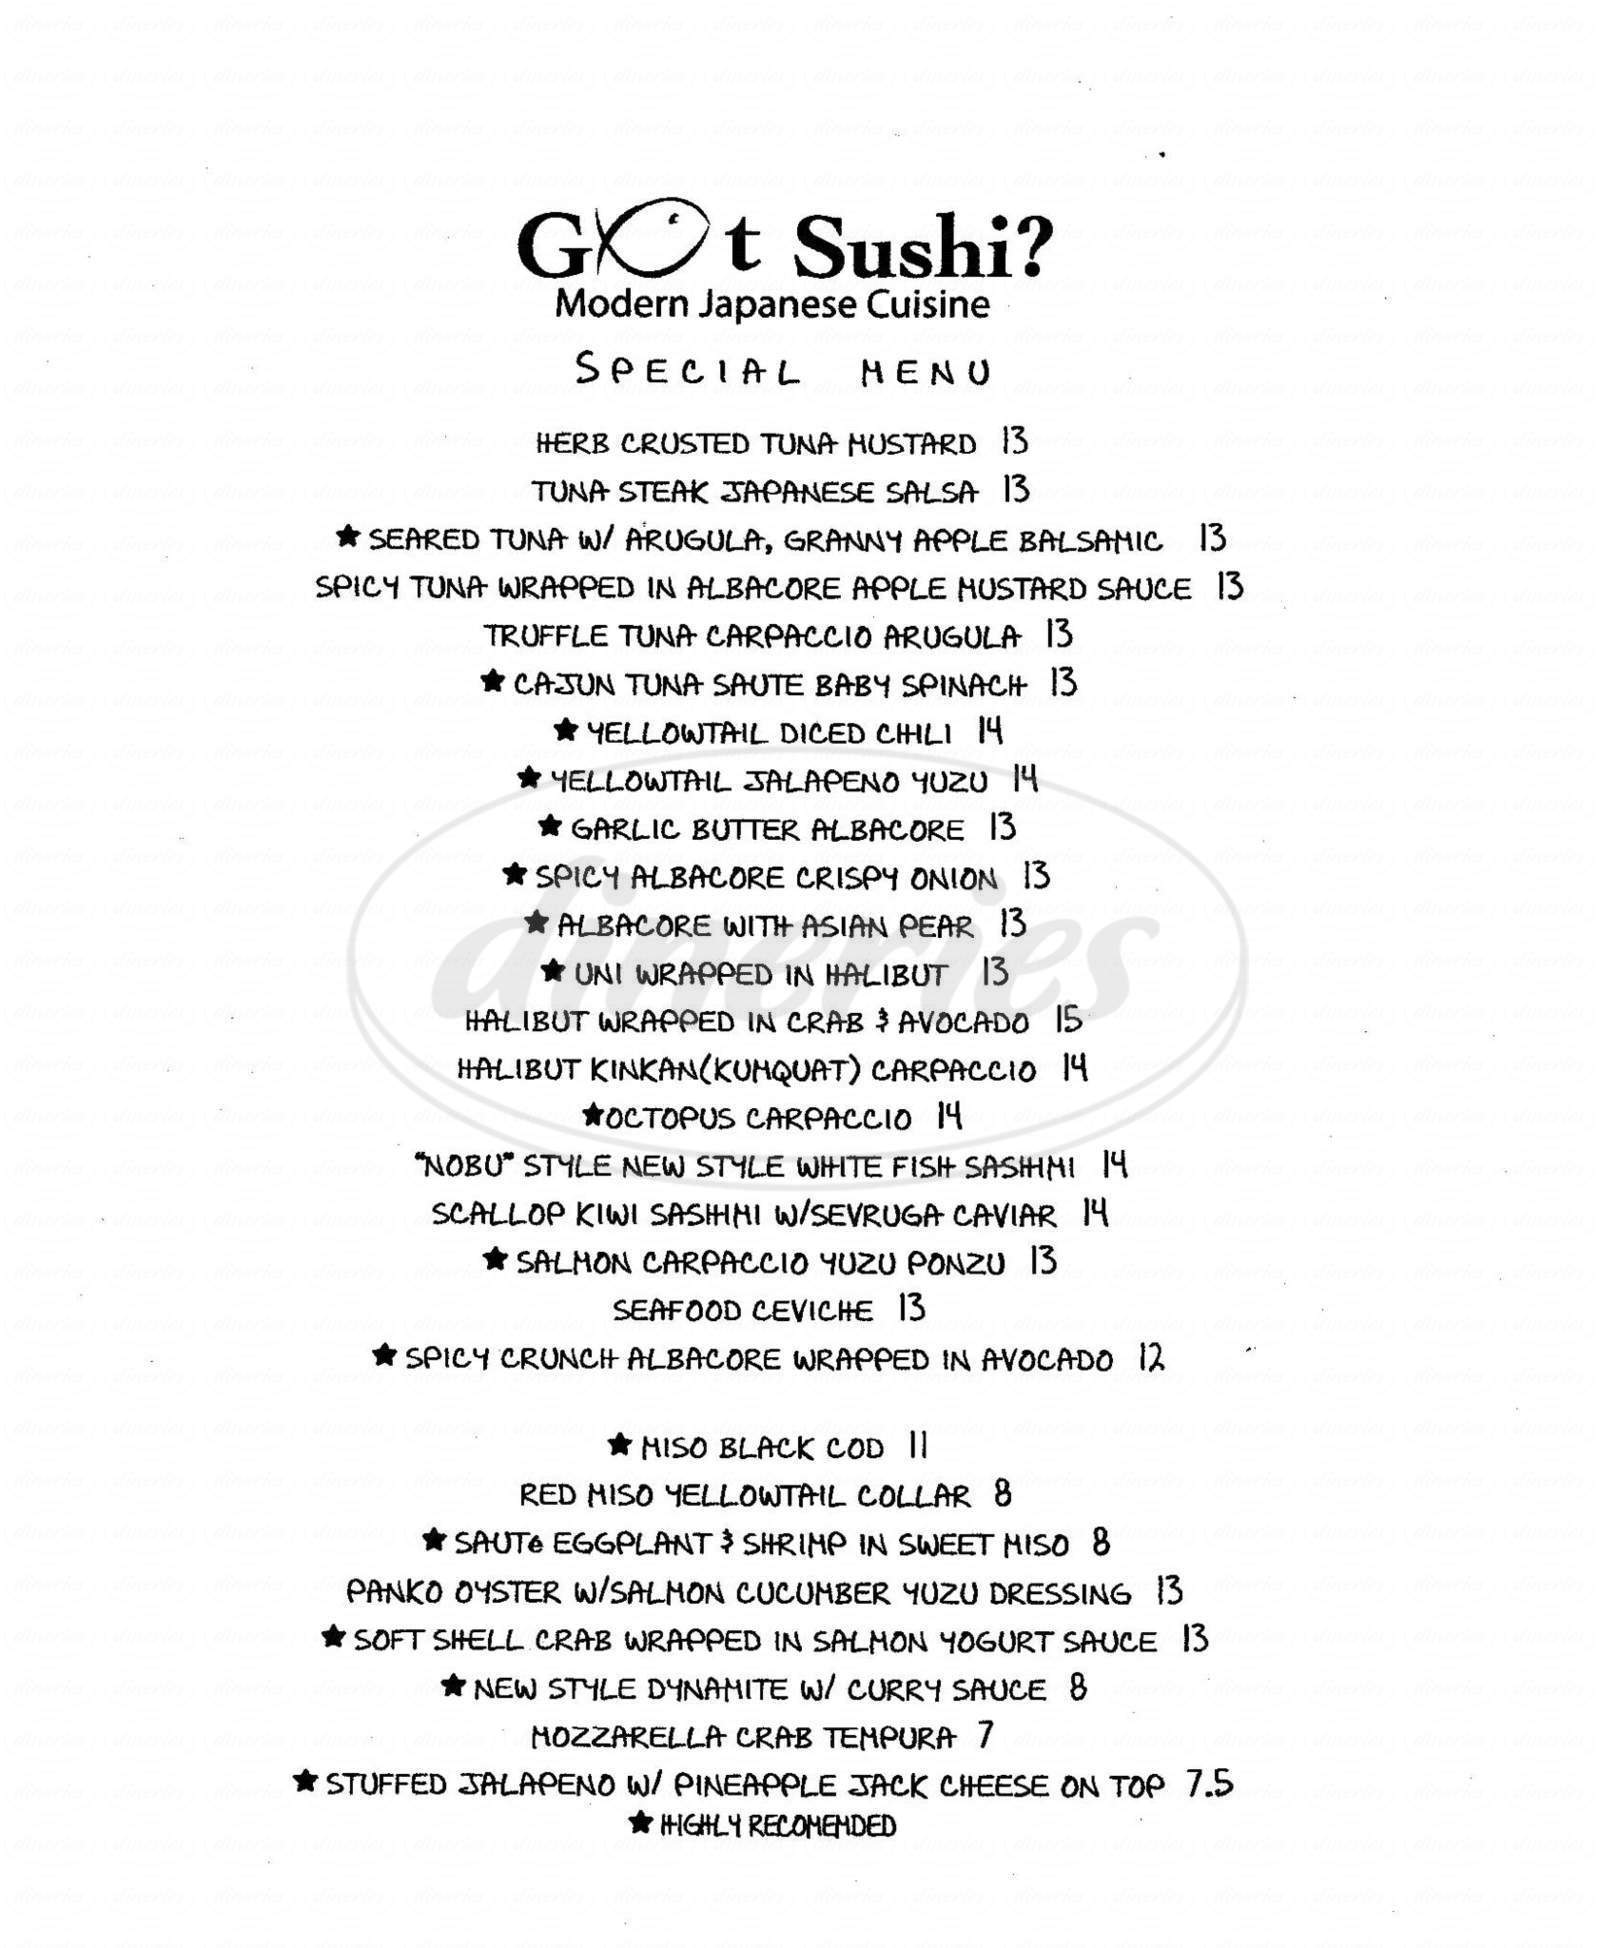 menu for King's Burgers - Got Sushi?